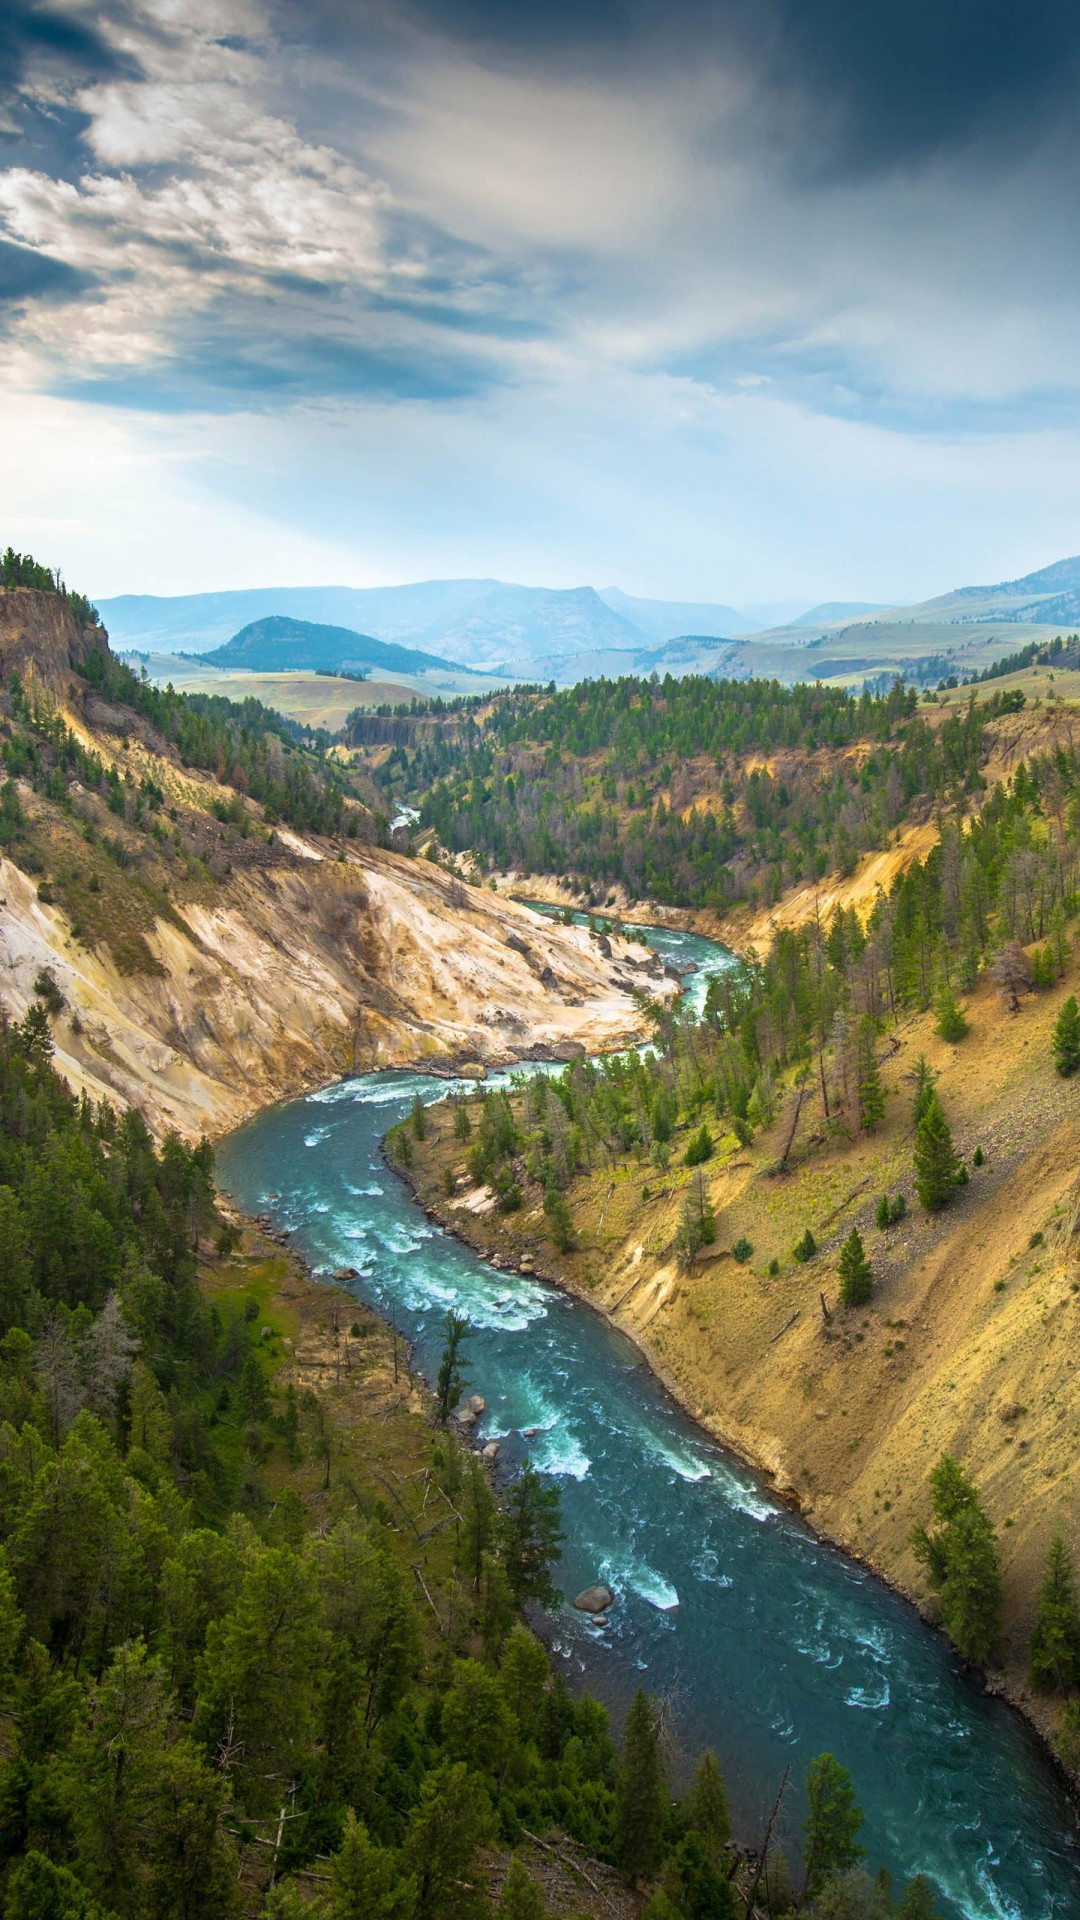 The River, Grand Canyon of Yellowstone National Park, USA Wallpaper for HTC One